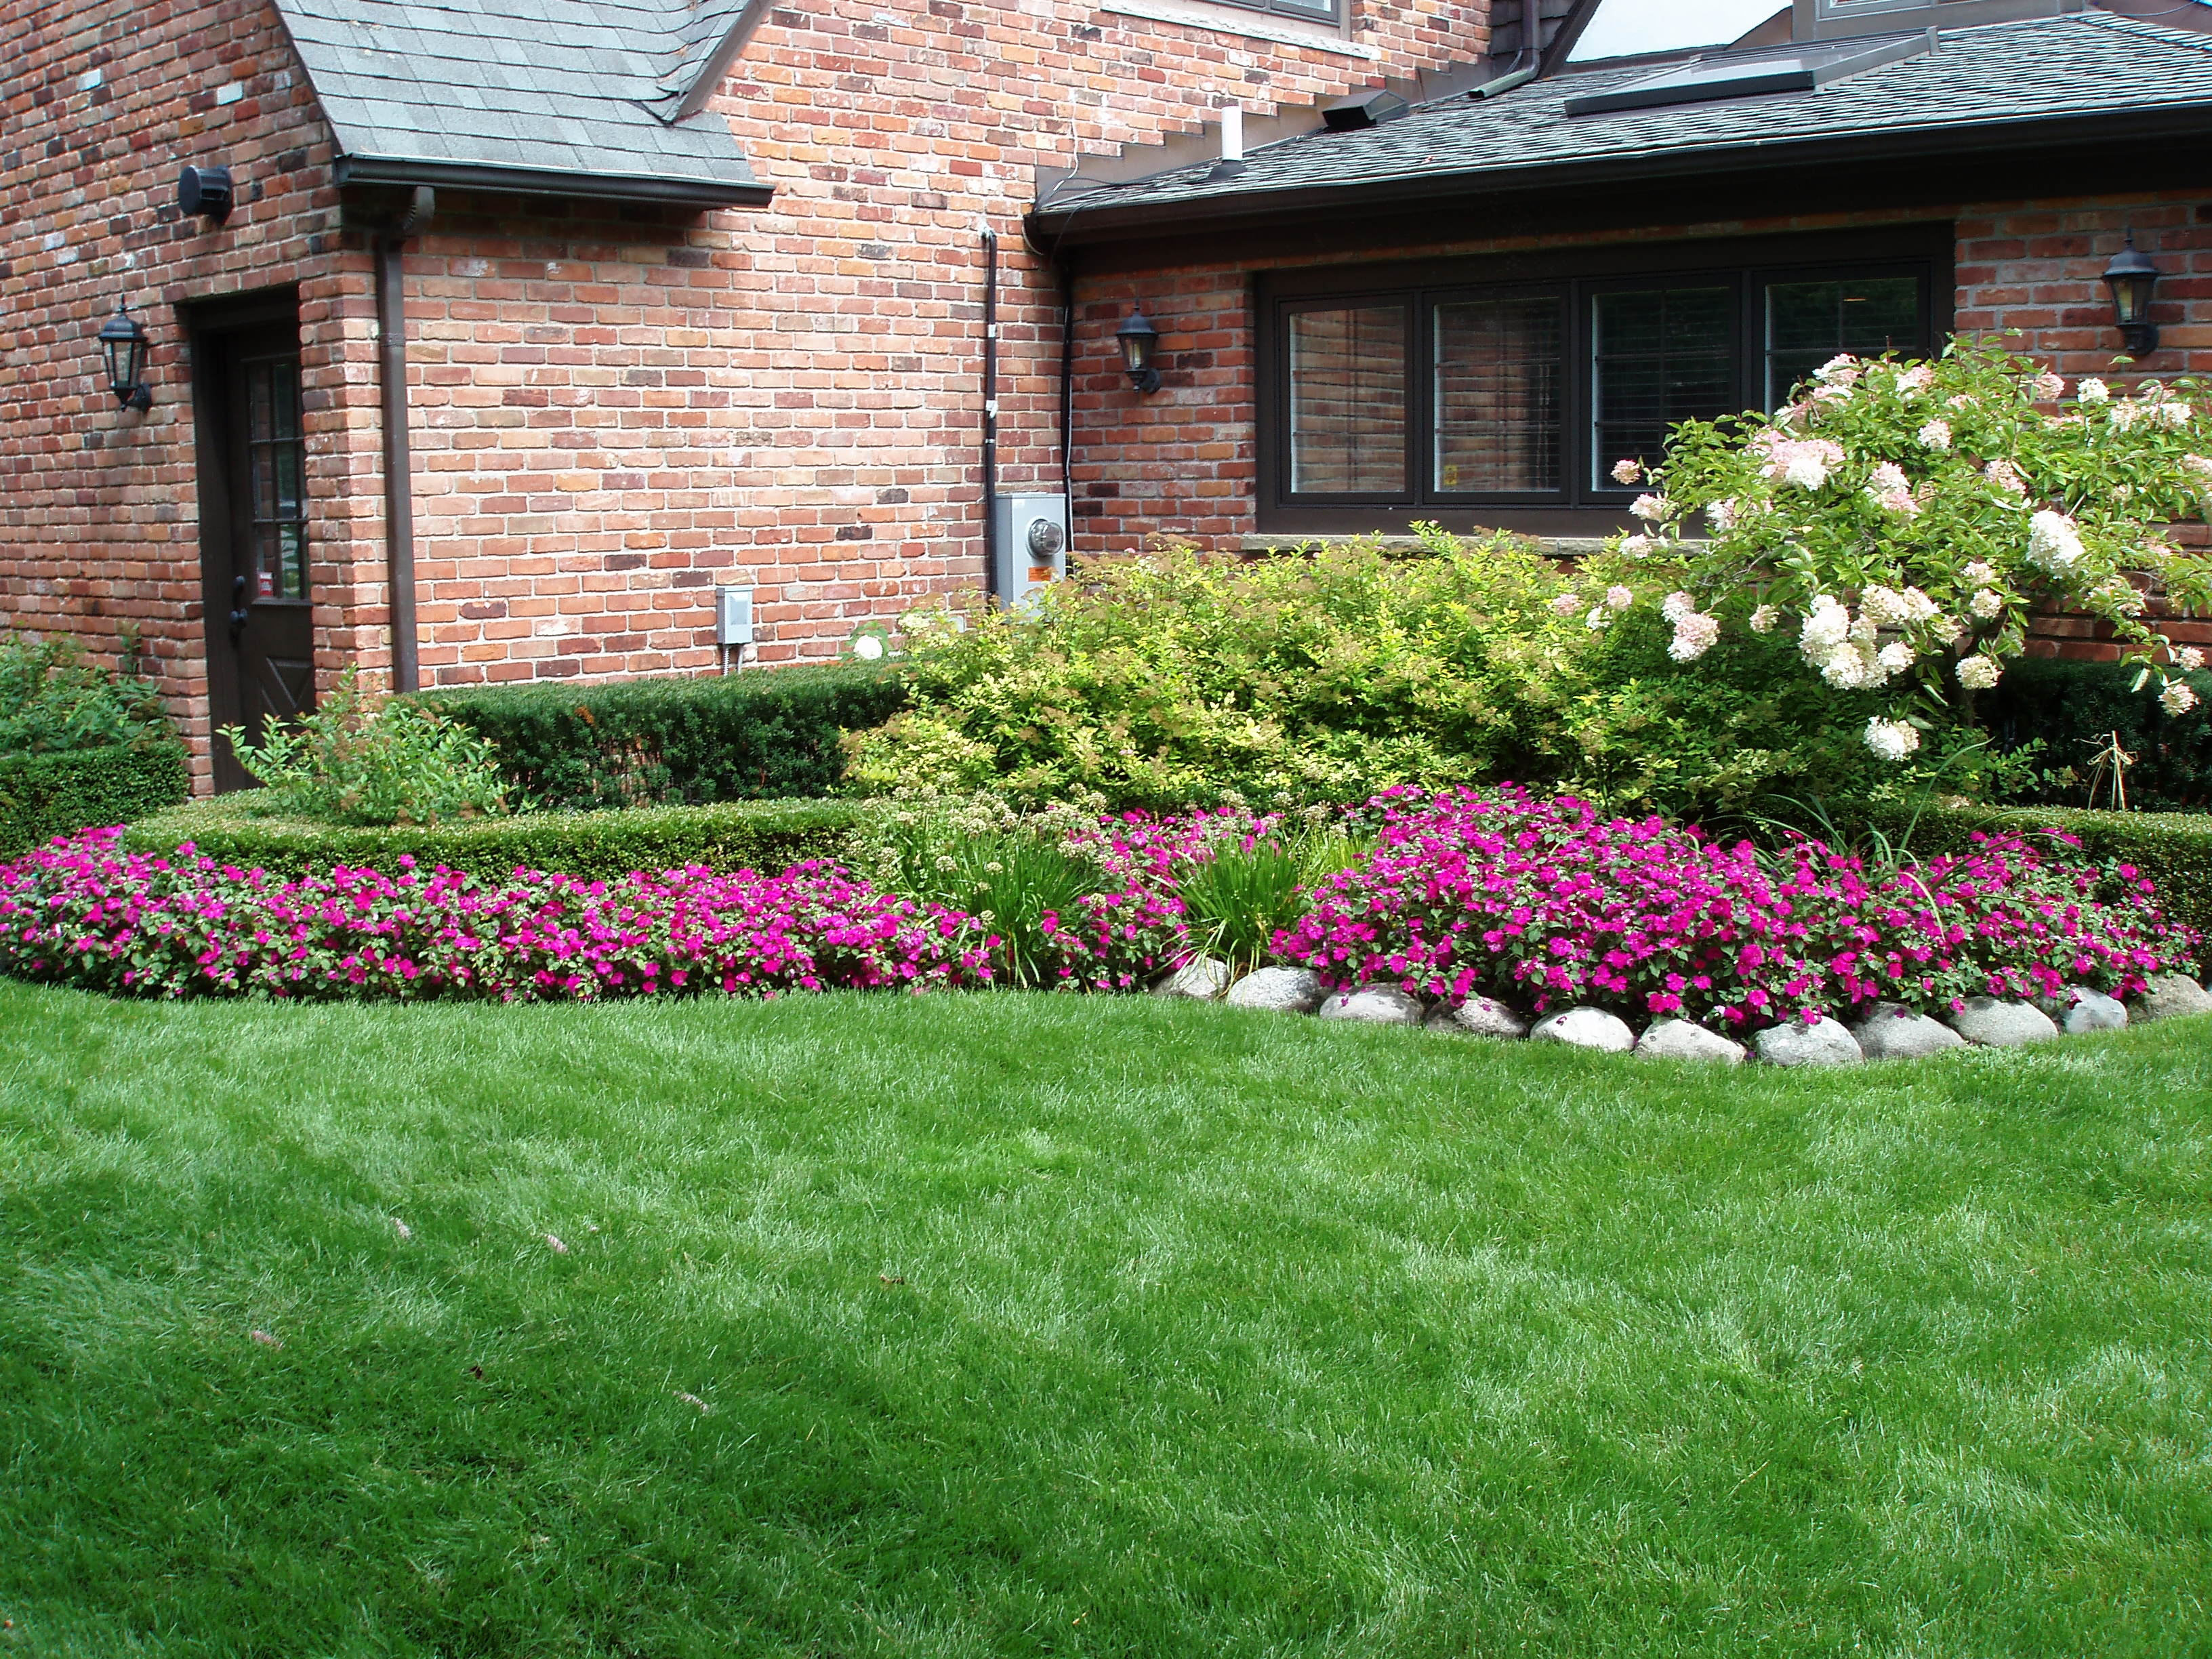 Perennials total lawn care inc full lawn maintenance for Flower ideas for front yard